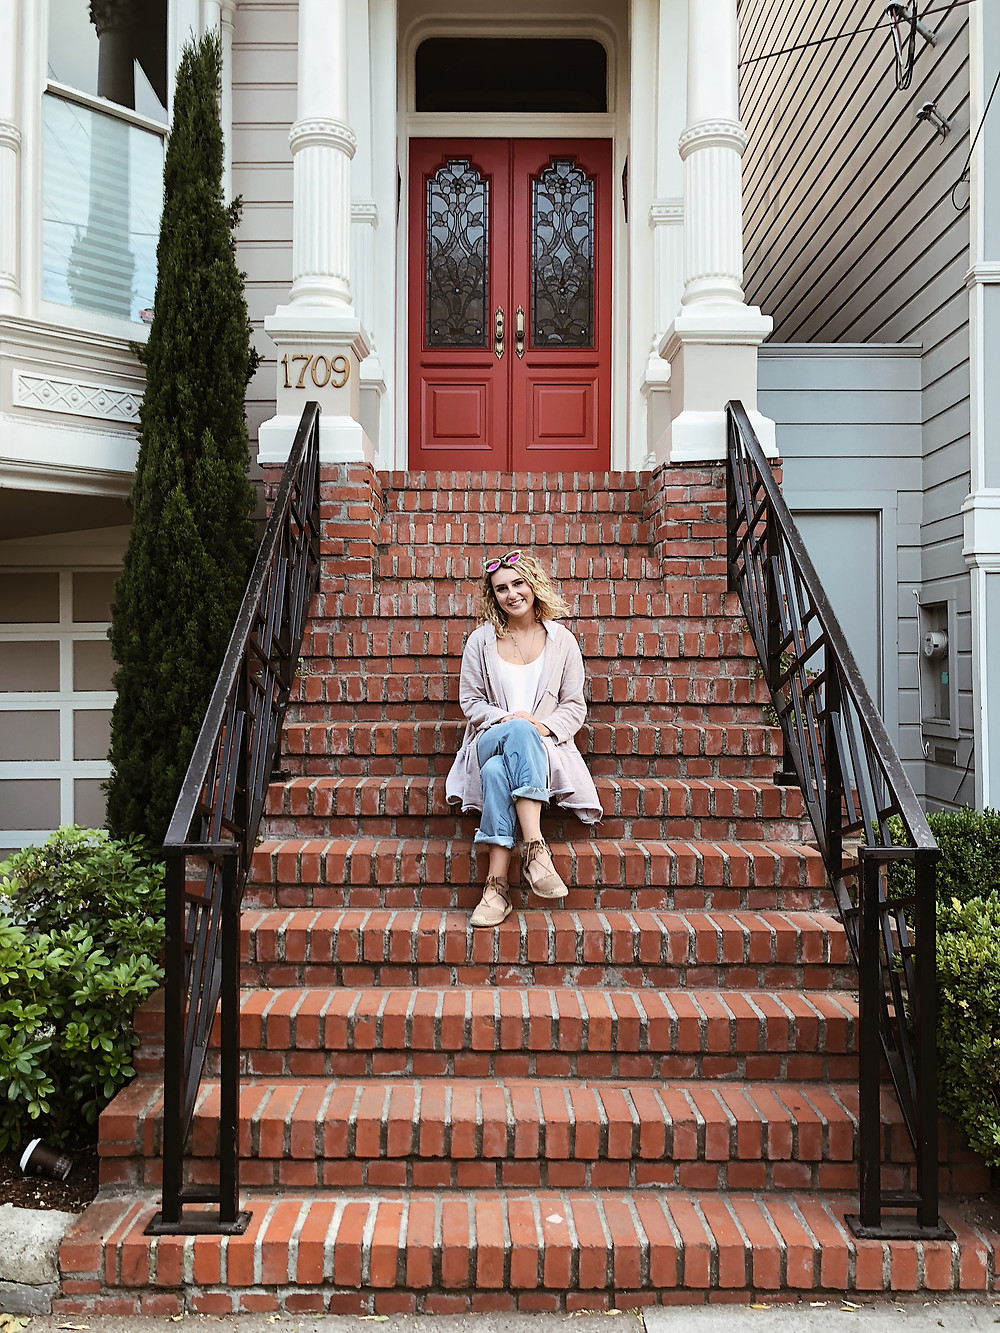 abby graf at the full house house